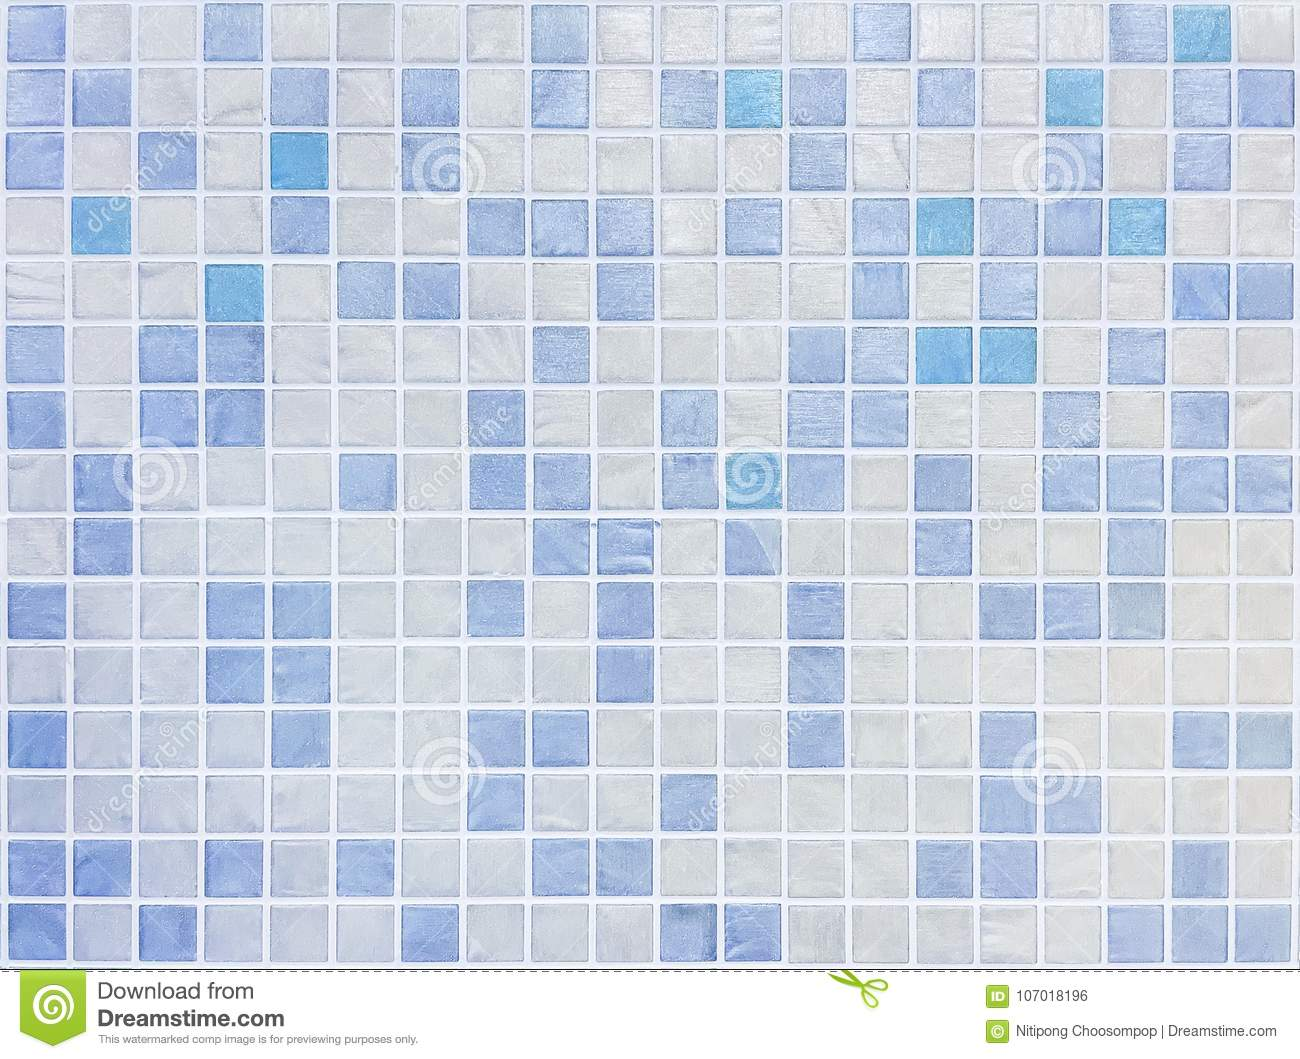 13 985 Bathroom Tiles Texture Photos Free Royalty Free Stock Photos From Dreamstime